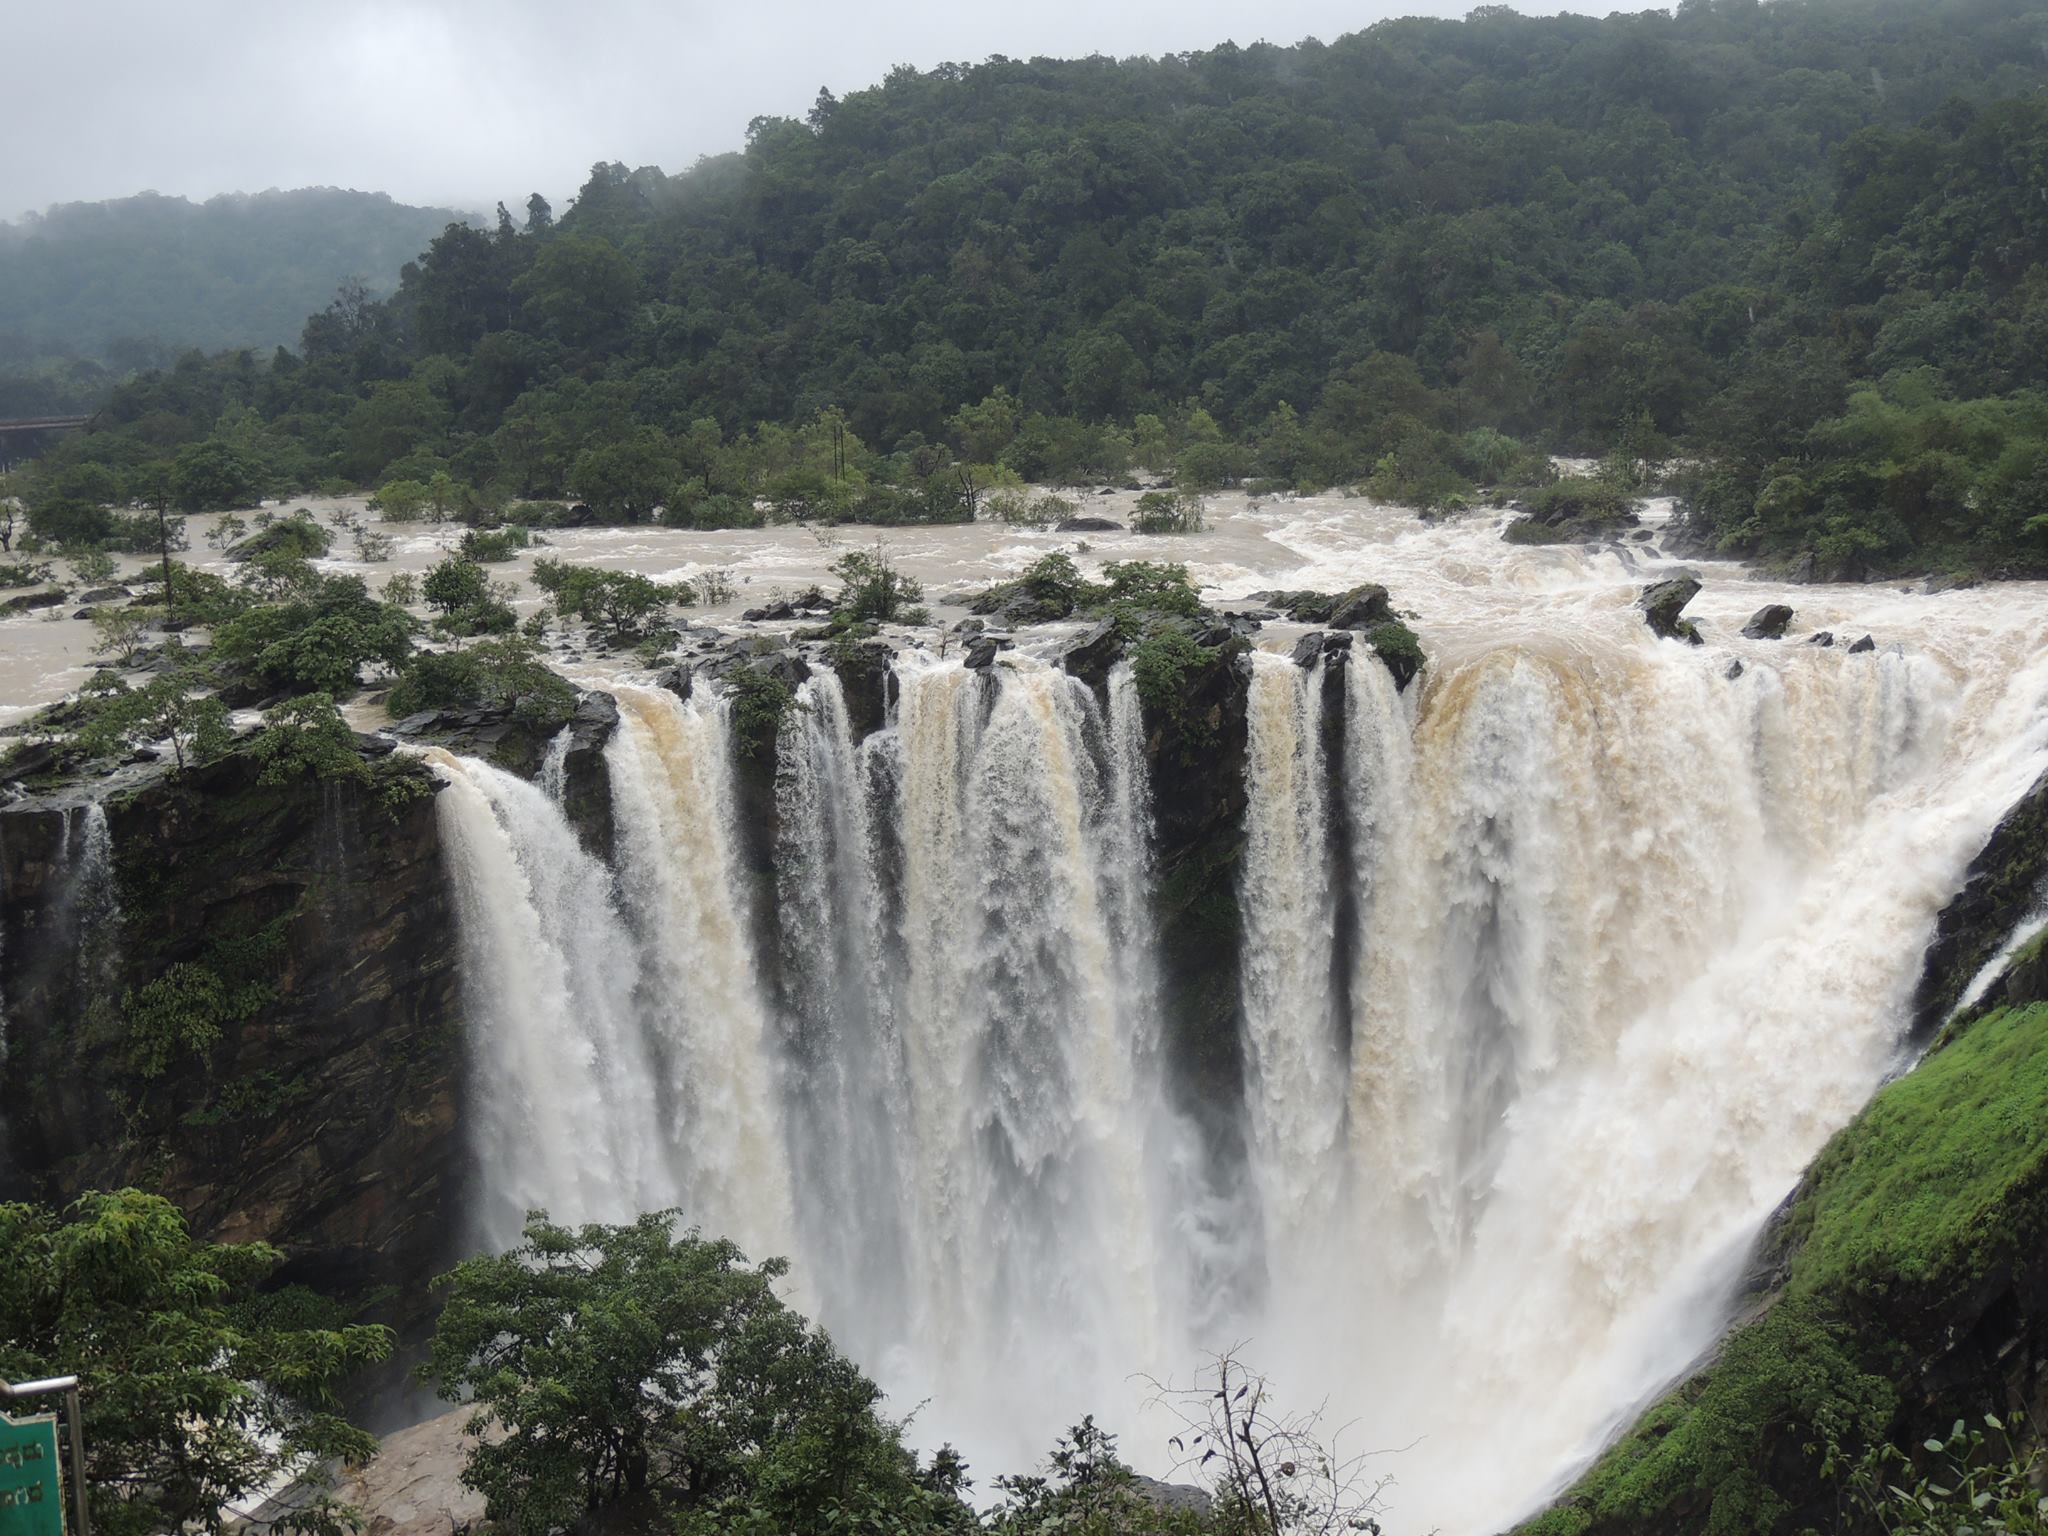 Jog Falls Hd Wallpaper Jog Falls In Full Spate During August 2013 An Ode To